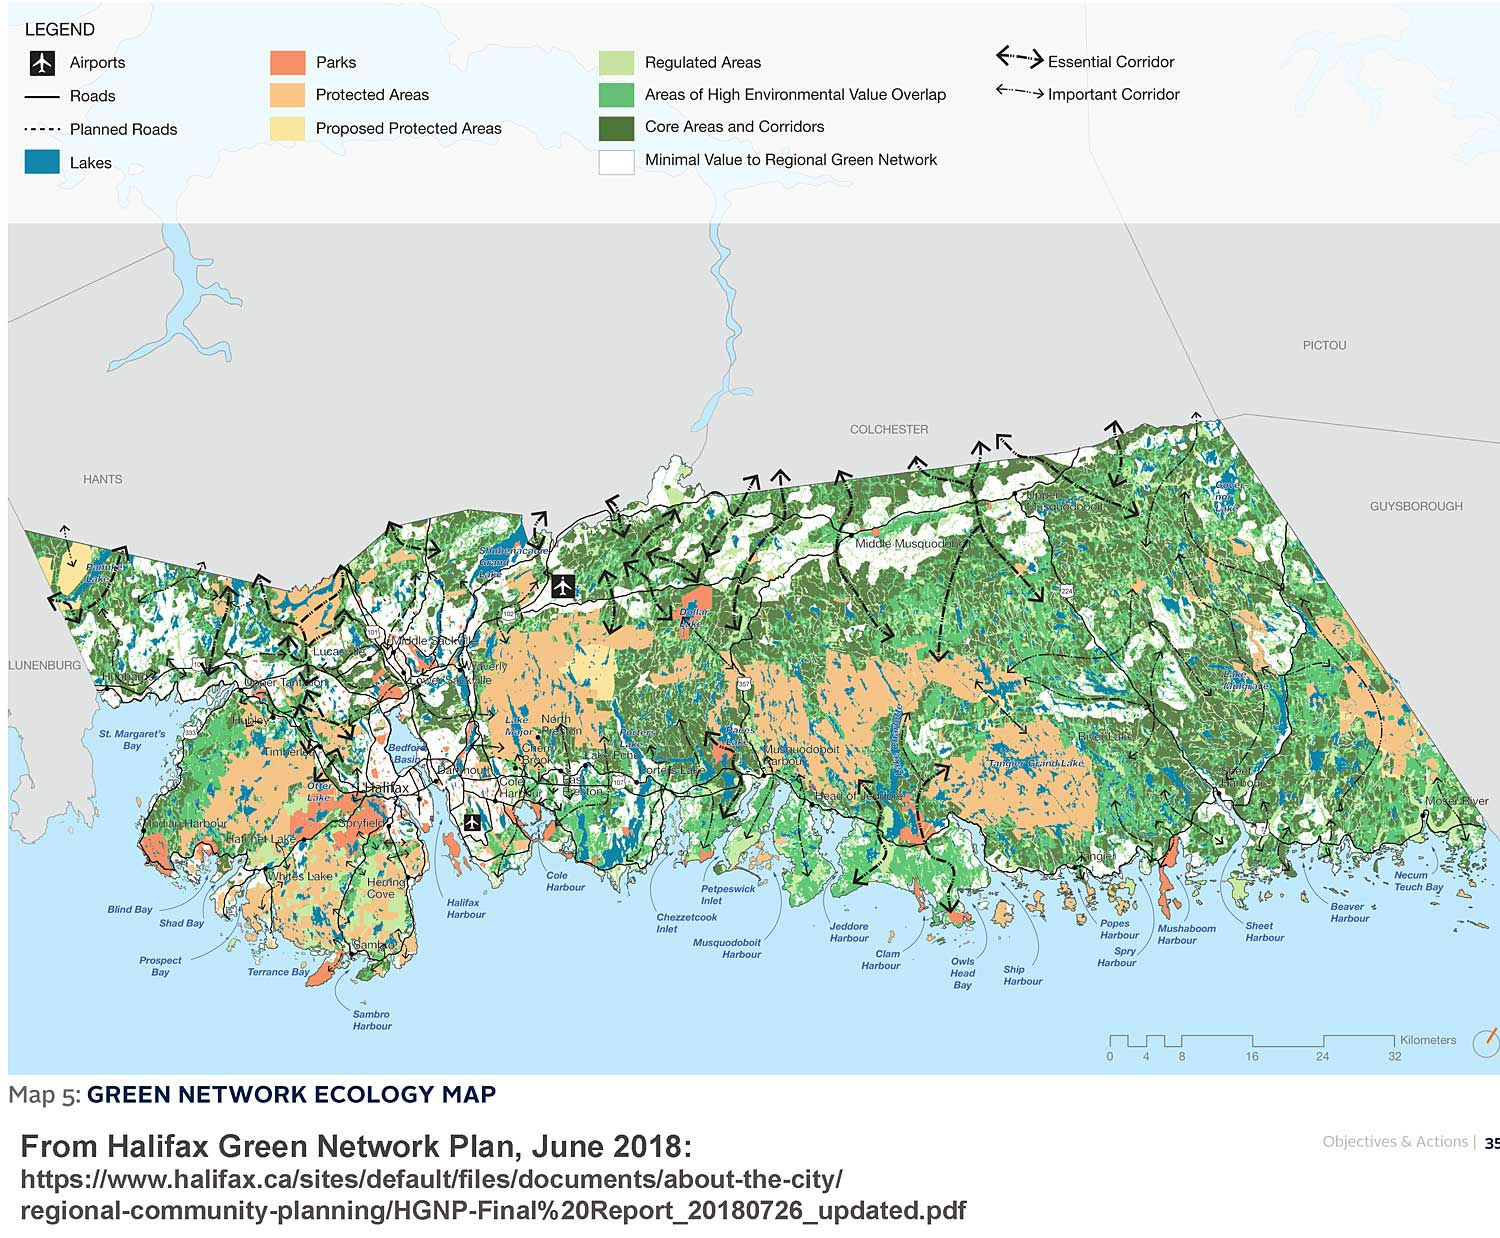 Halifax Field Naturalists on st. lawrence river map, dartmouth map, fredericton map, canada map, nova scotia map, derry map, rugby map, quebec map, bedford map, northern lebanon map, port hood map, north middleton township map, north american rivers map, ottawa map, fort cumberland map, new brunswick map, otis map, nottoway map, lanesboro map, grande anse map,